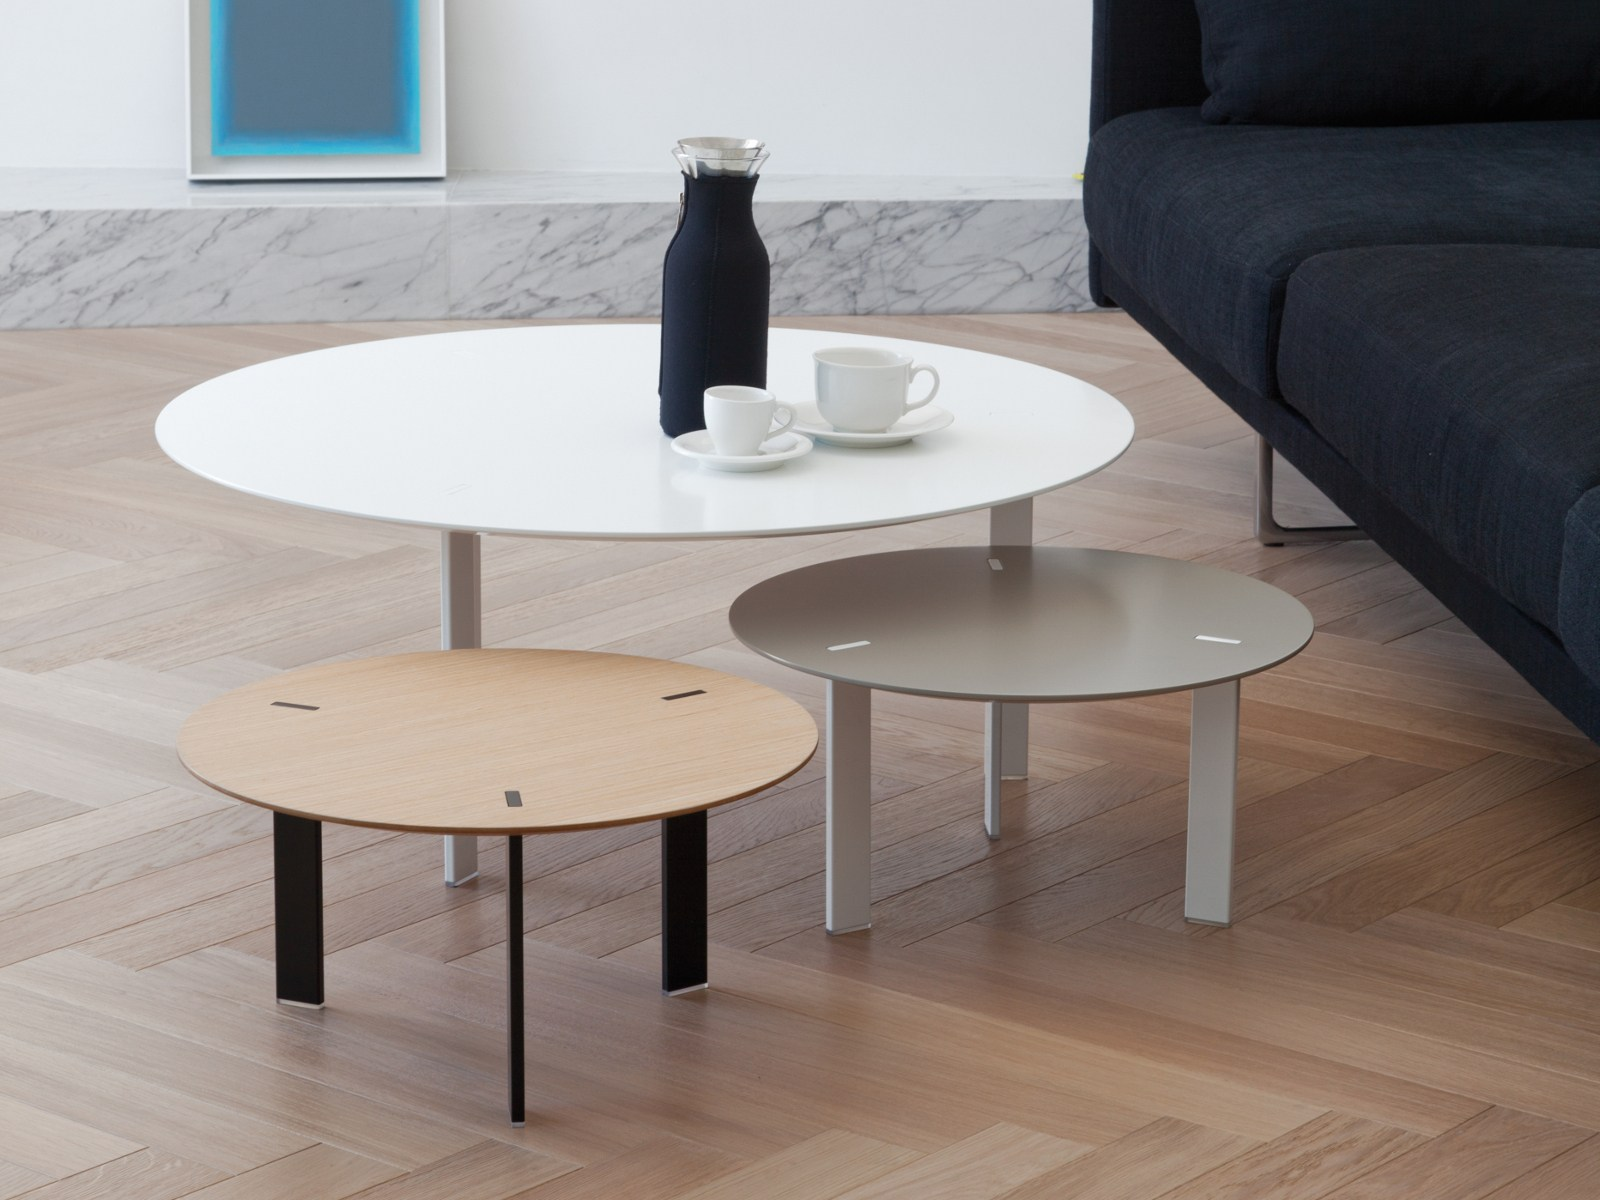 Home Trends And Design Retailers Round Coffee Table For Living Room Ryutaro By Viccarbe